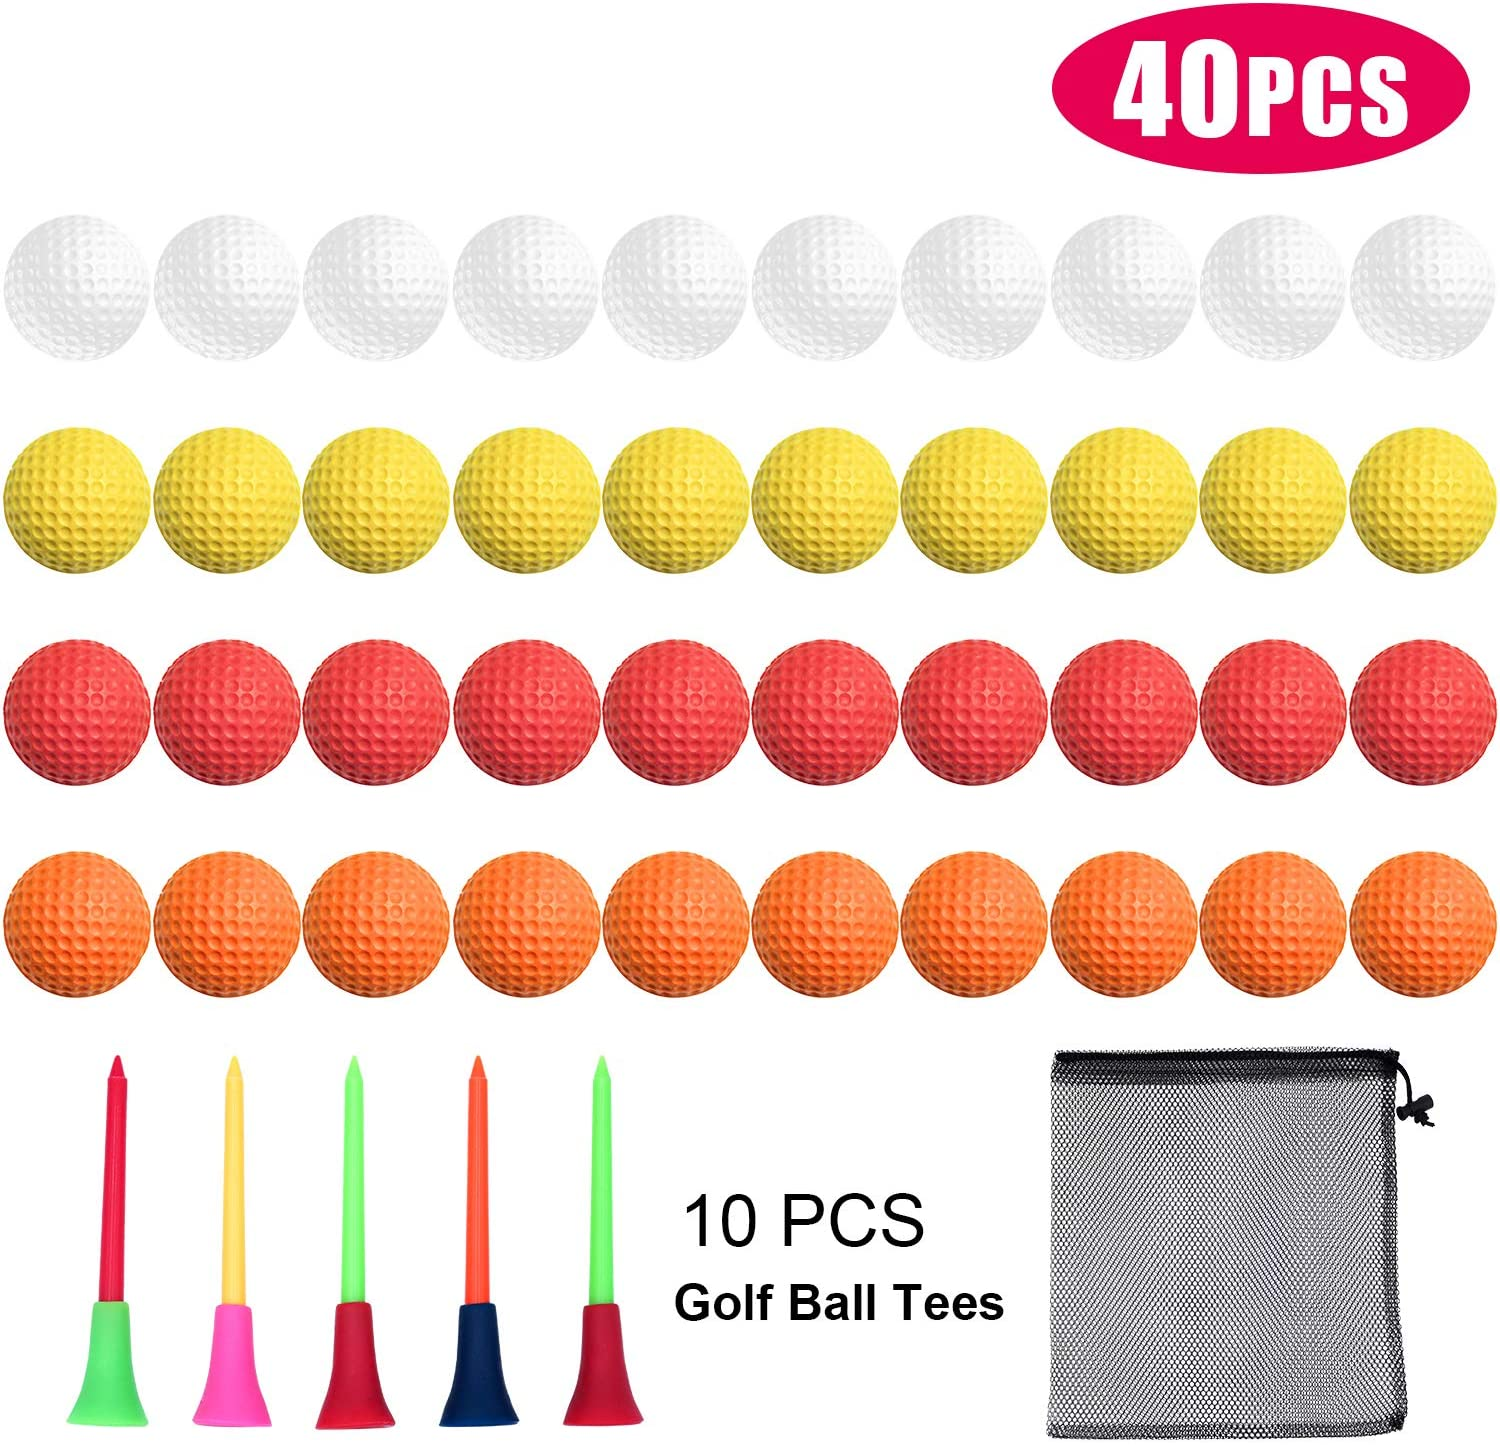 Bac-kitchen 40 Pack Foam Golf Practice Balls - Realistic Feel and Limited Flight Training Balls for Indoor or Outdoor